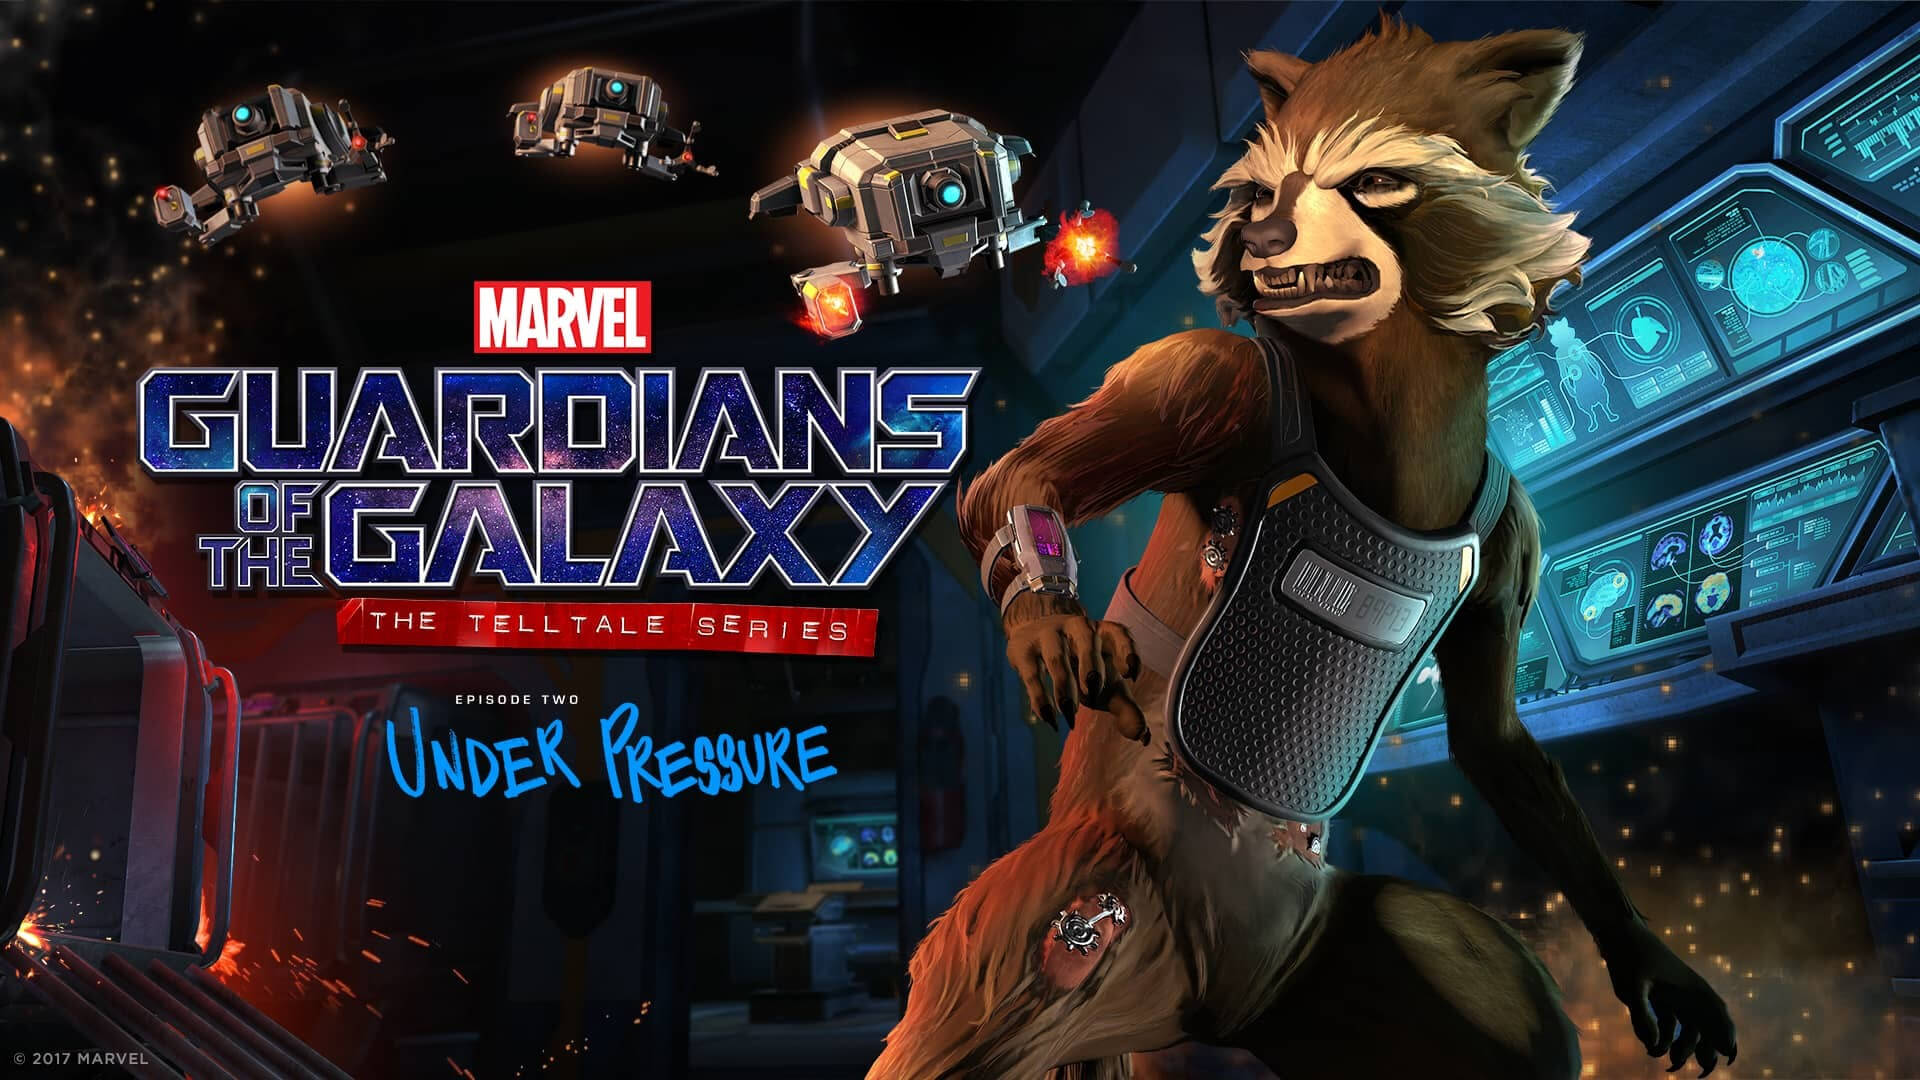 Marvel's Guardians of the Galaxy - Episode 2: Under Pressure Masthead